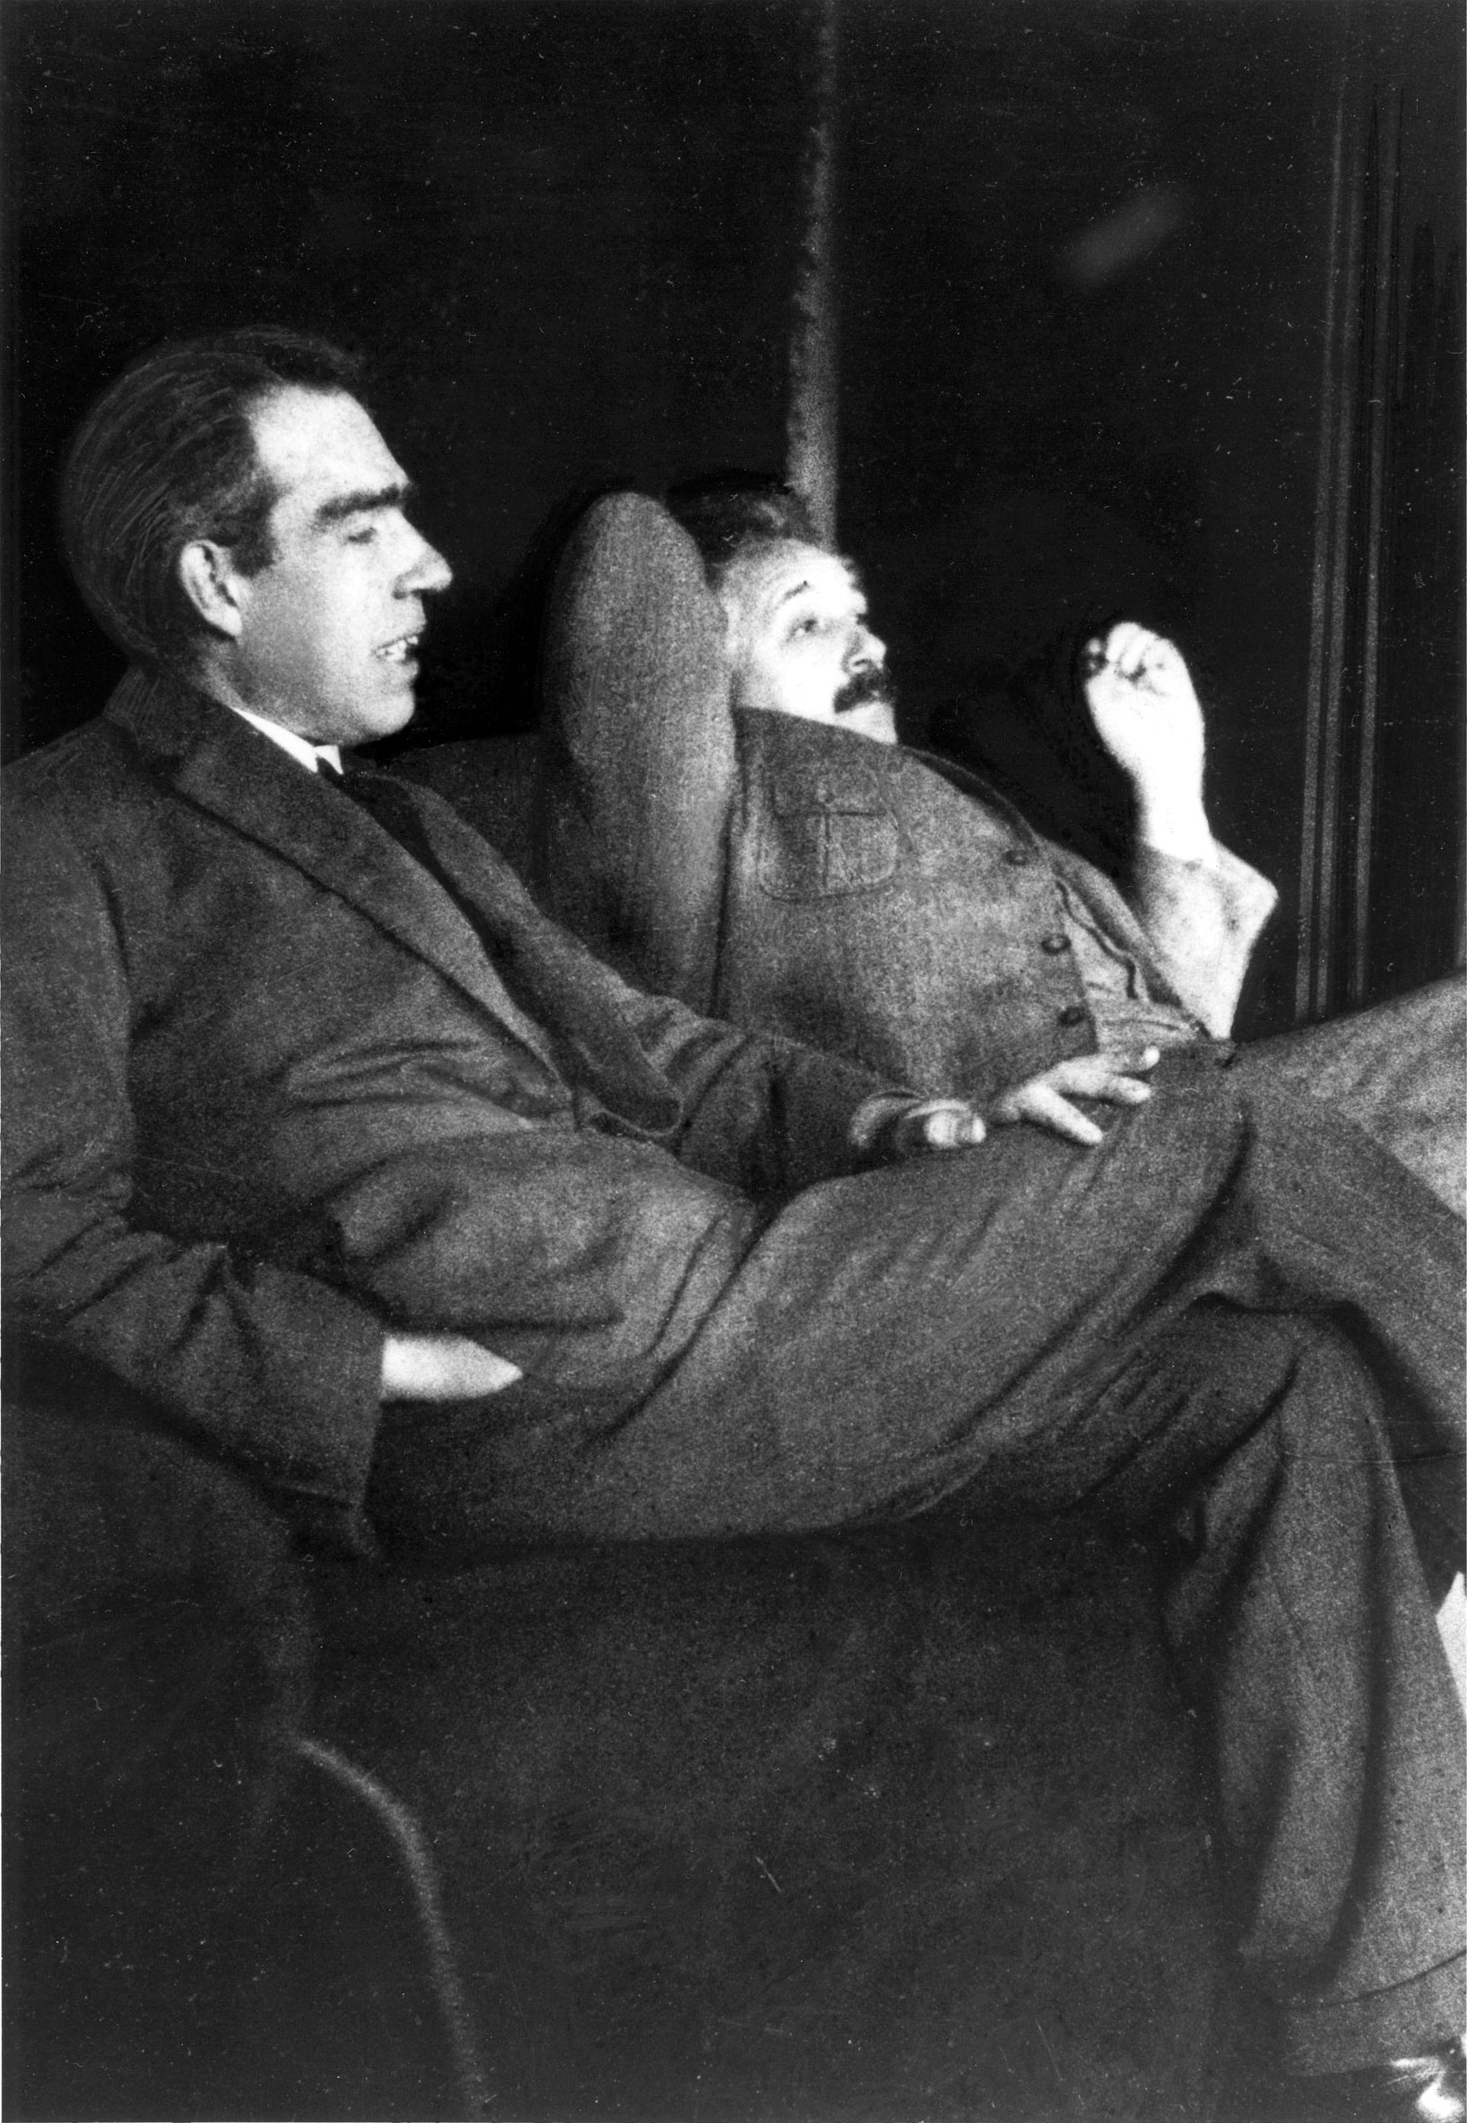 http://upload.wikimedia.org/wikipedia/commons/d/d5/Niels_Bohr_Albert_Einstein_by_Ehrenfest.jpg